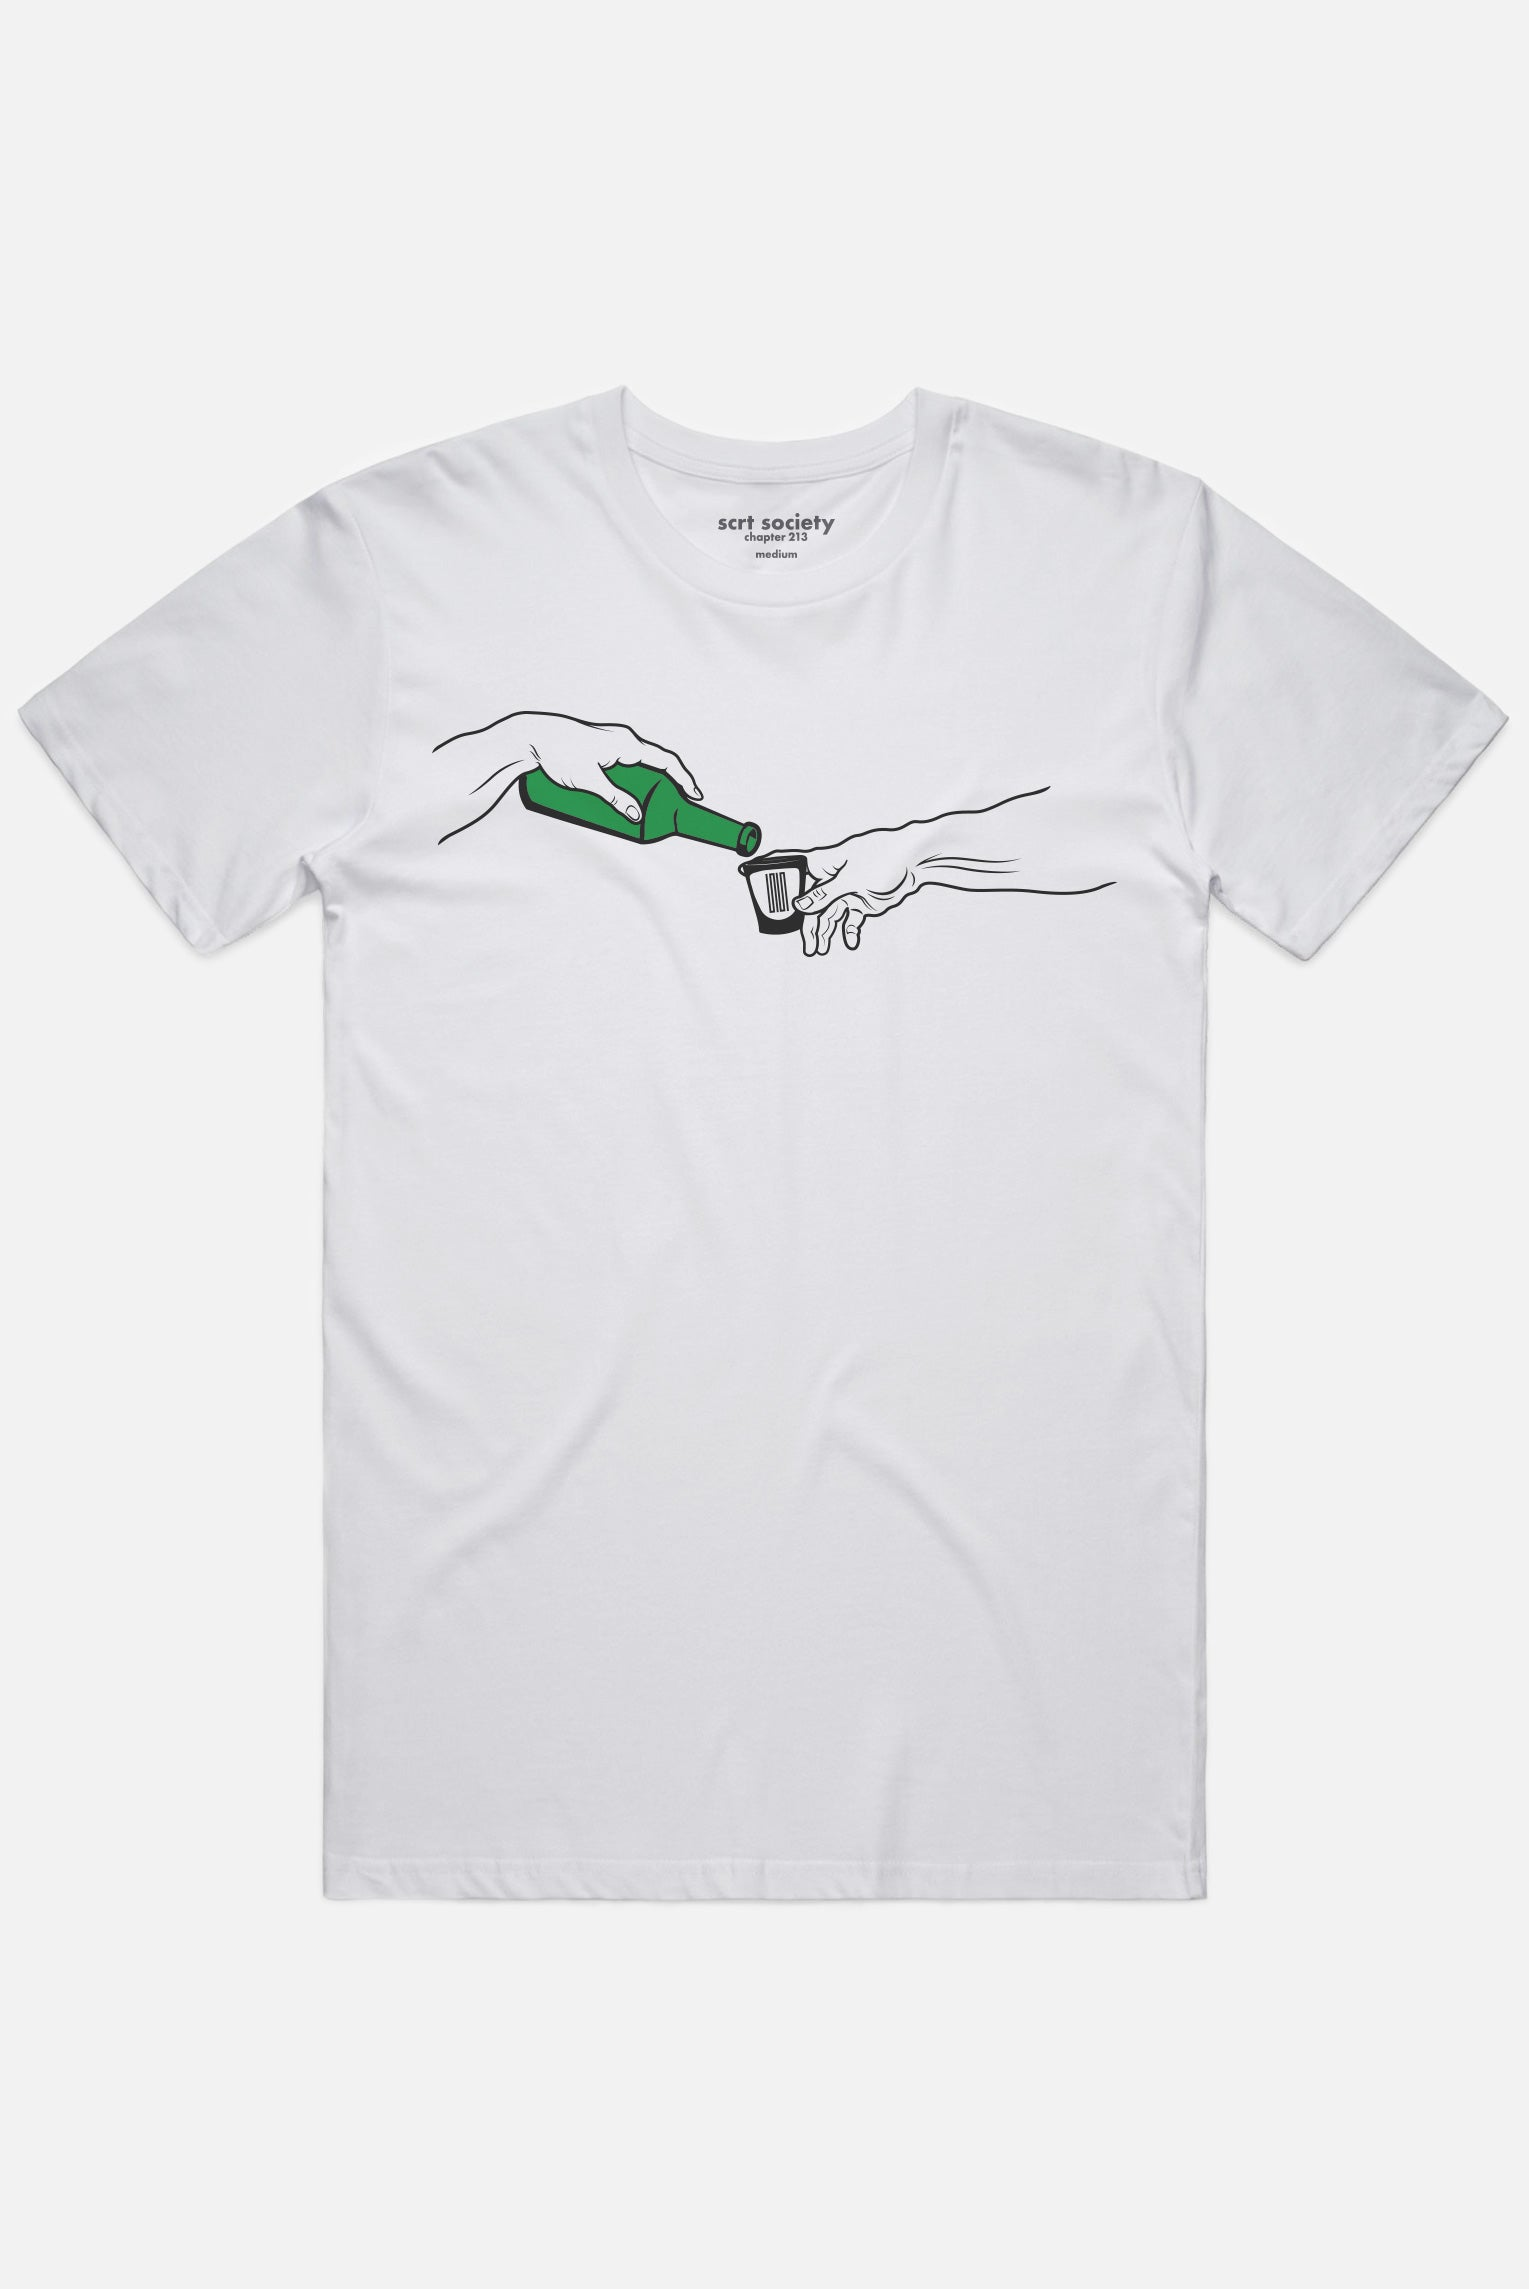 creation of soju tee - scrt society